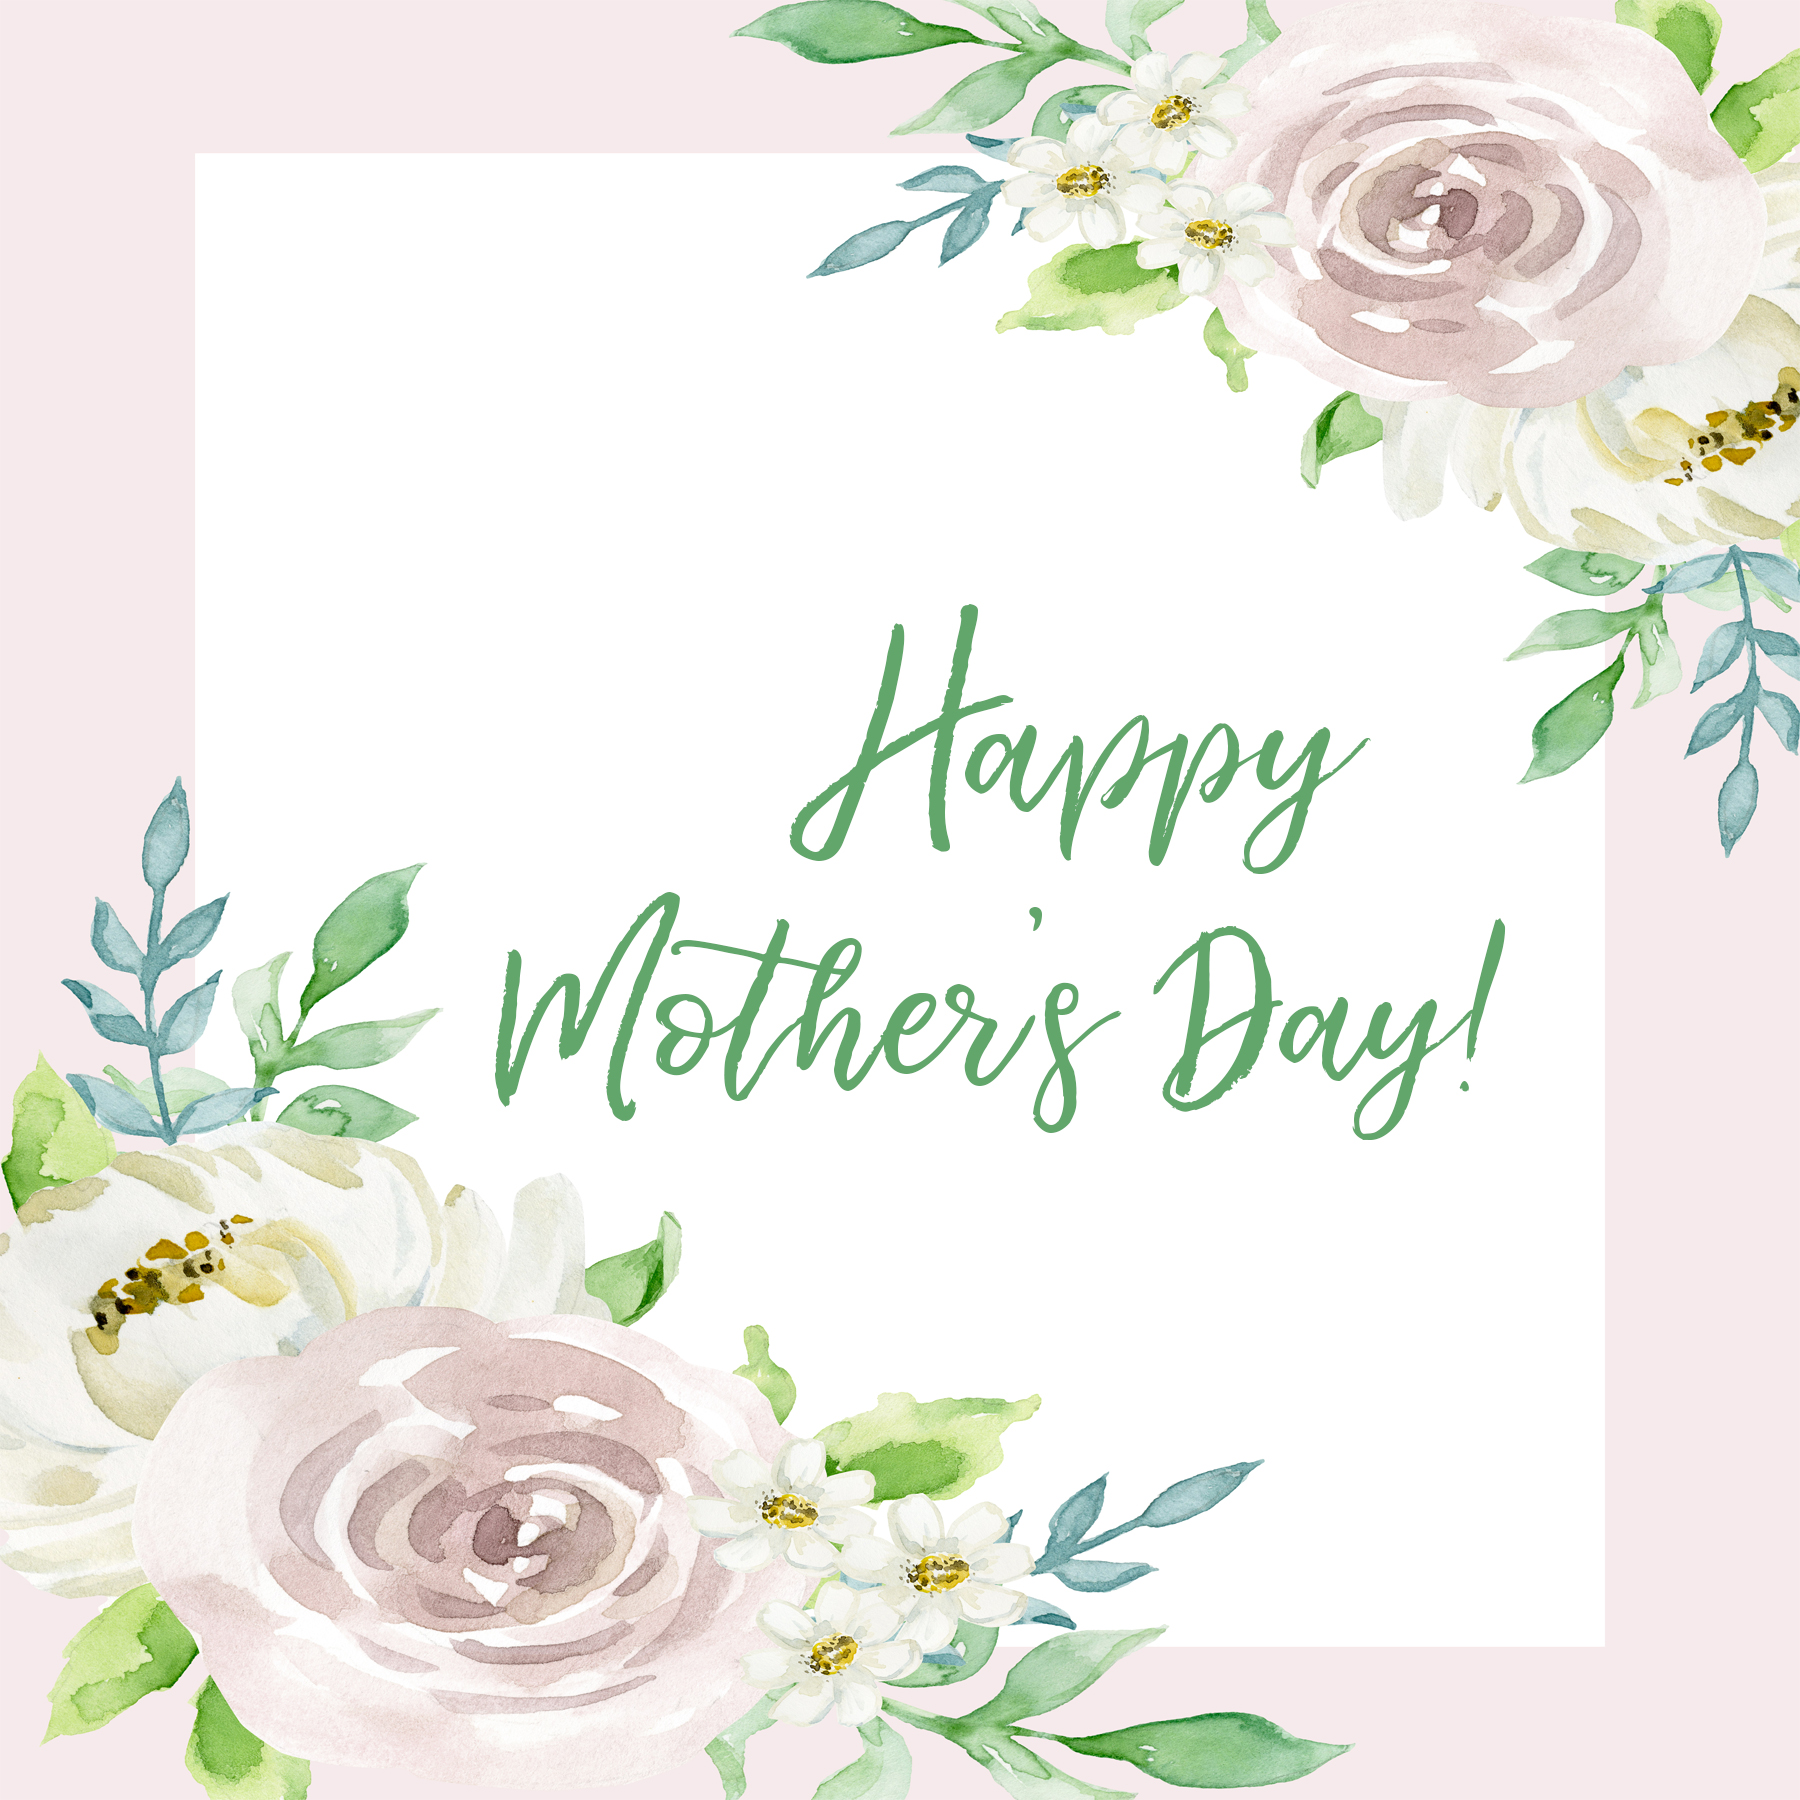 Give a gift in honor of the moms in your life and then download a beautifully designed printable to mail or give to show your love. -